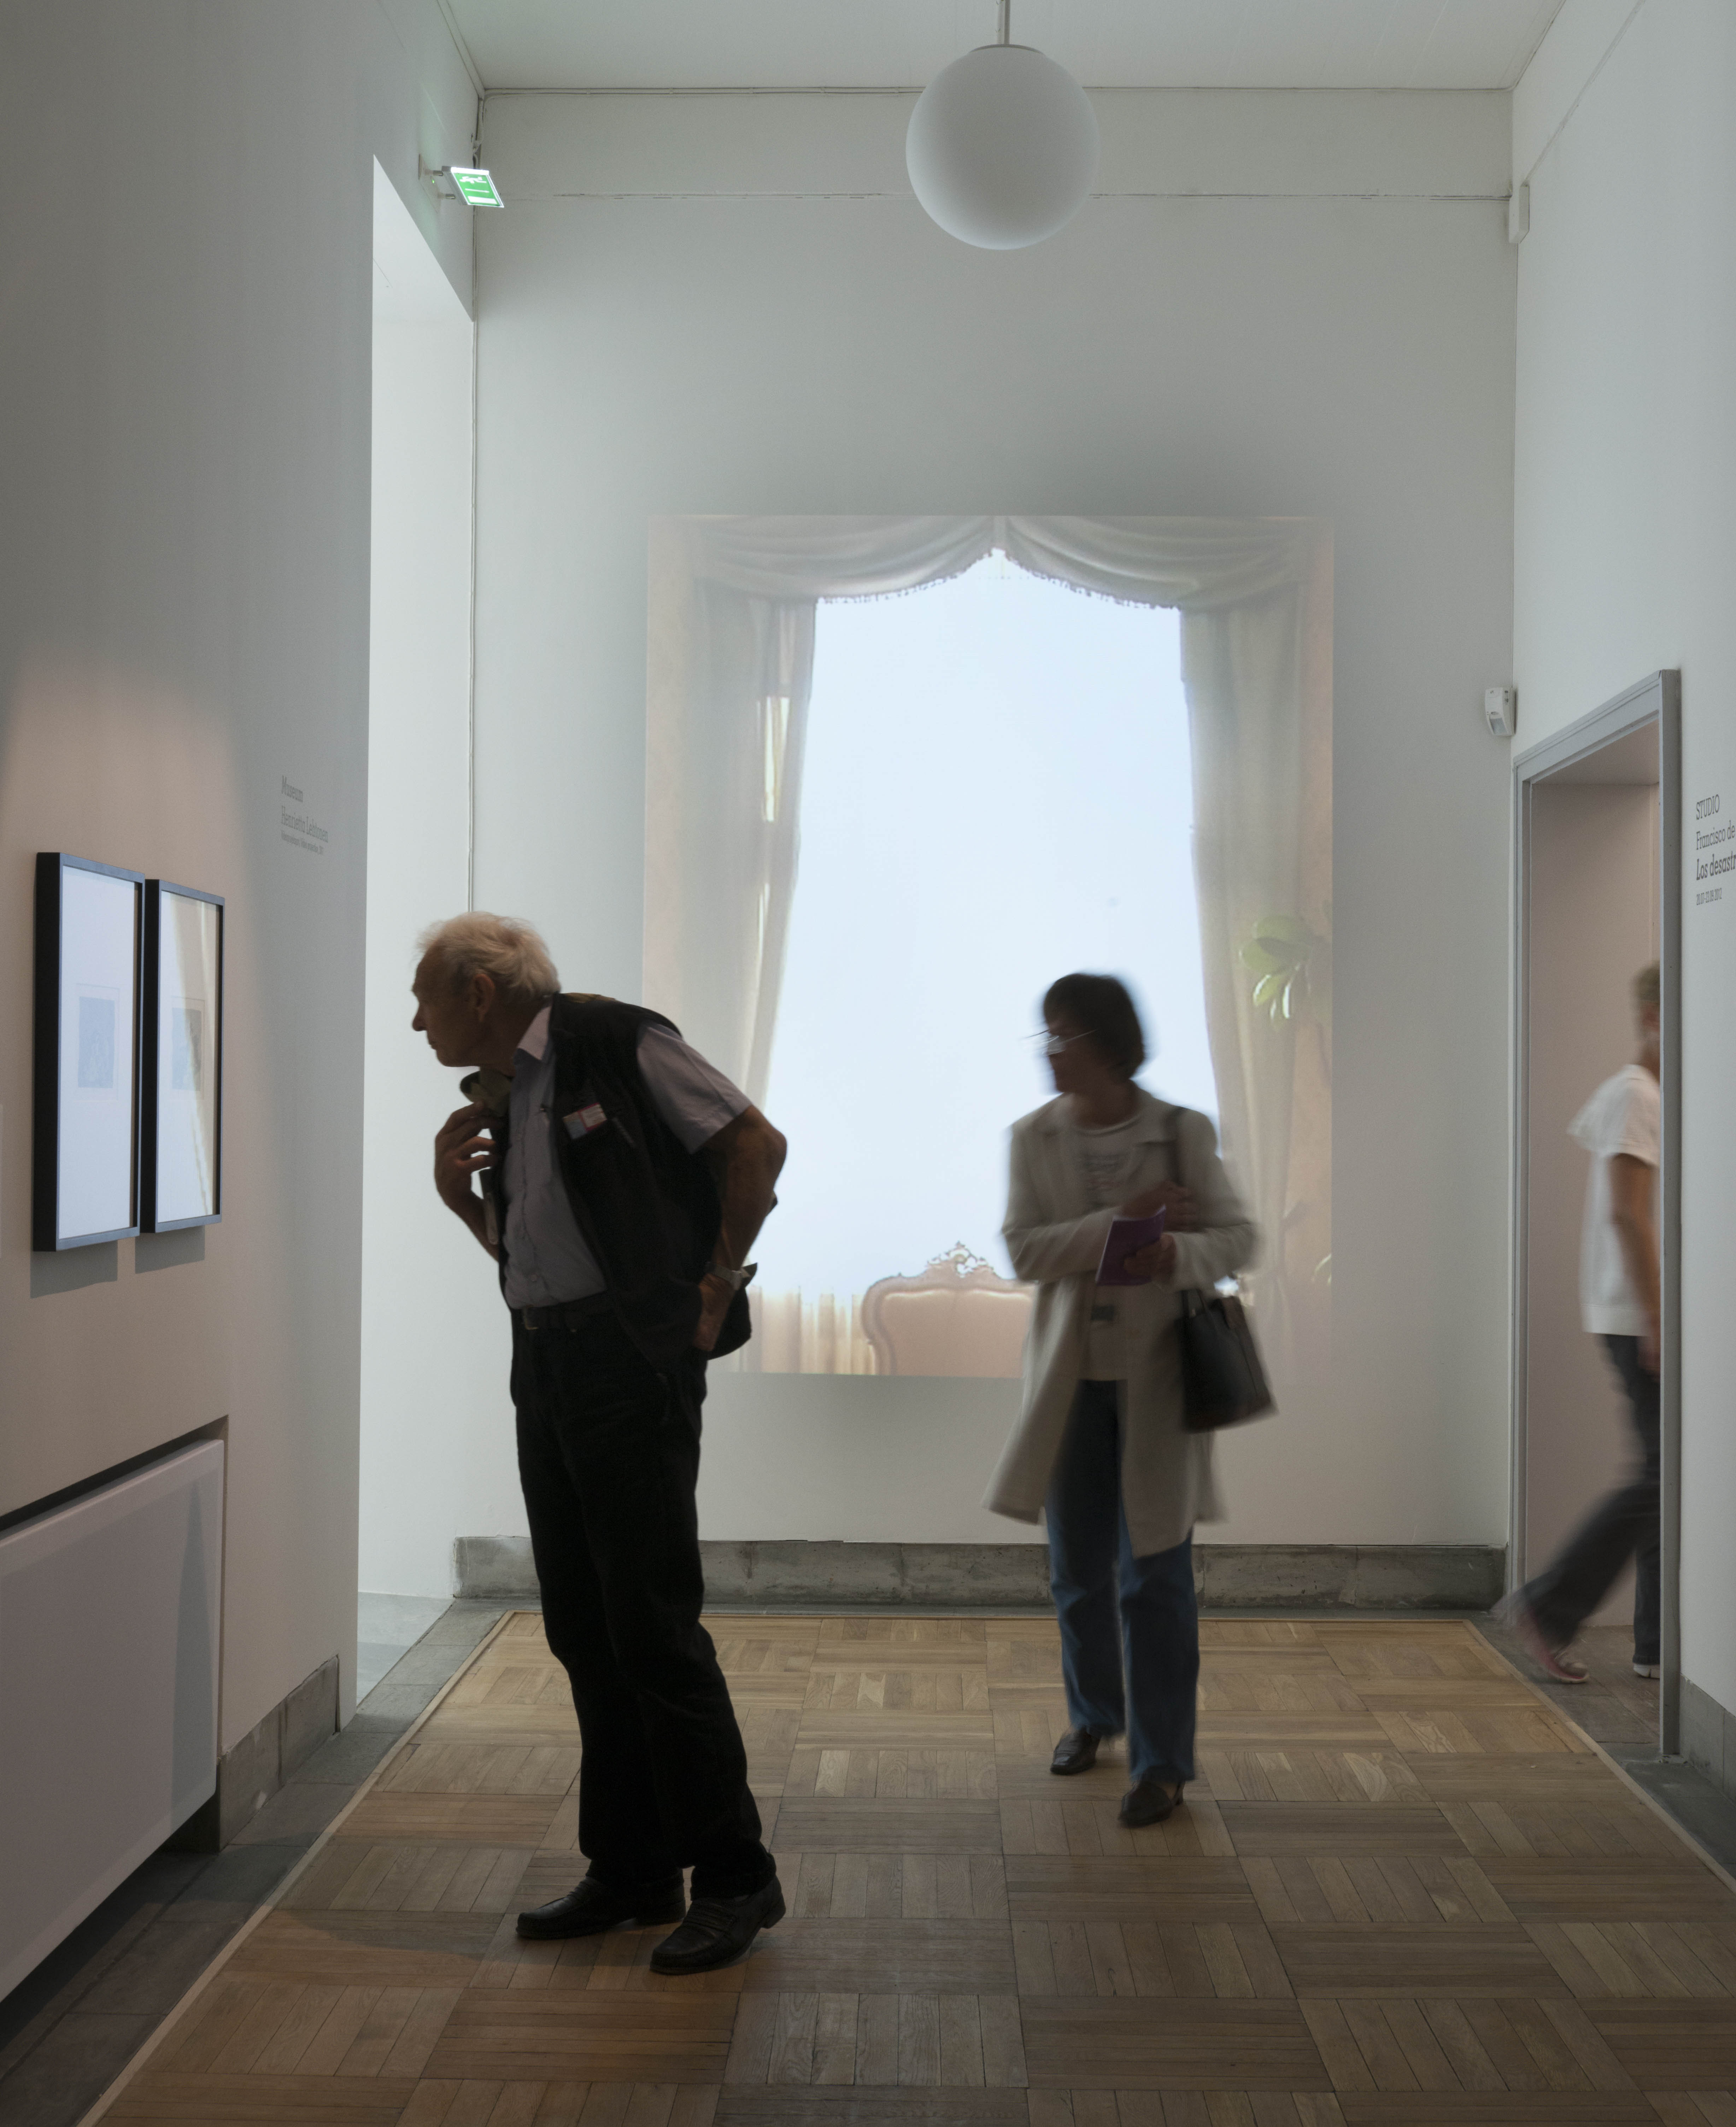 Window, Trondheim Kunstmuseum 2012